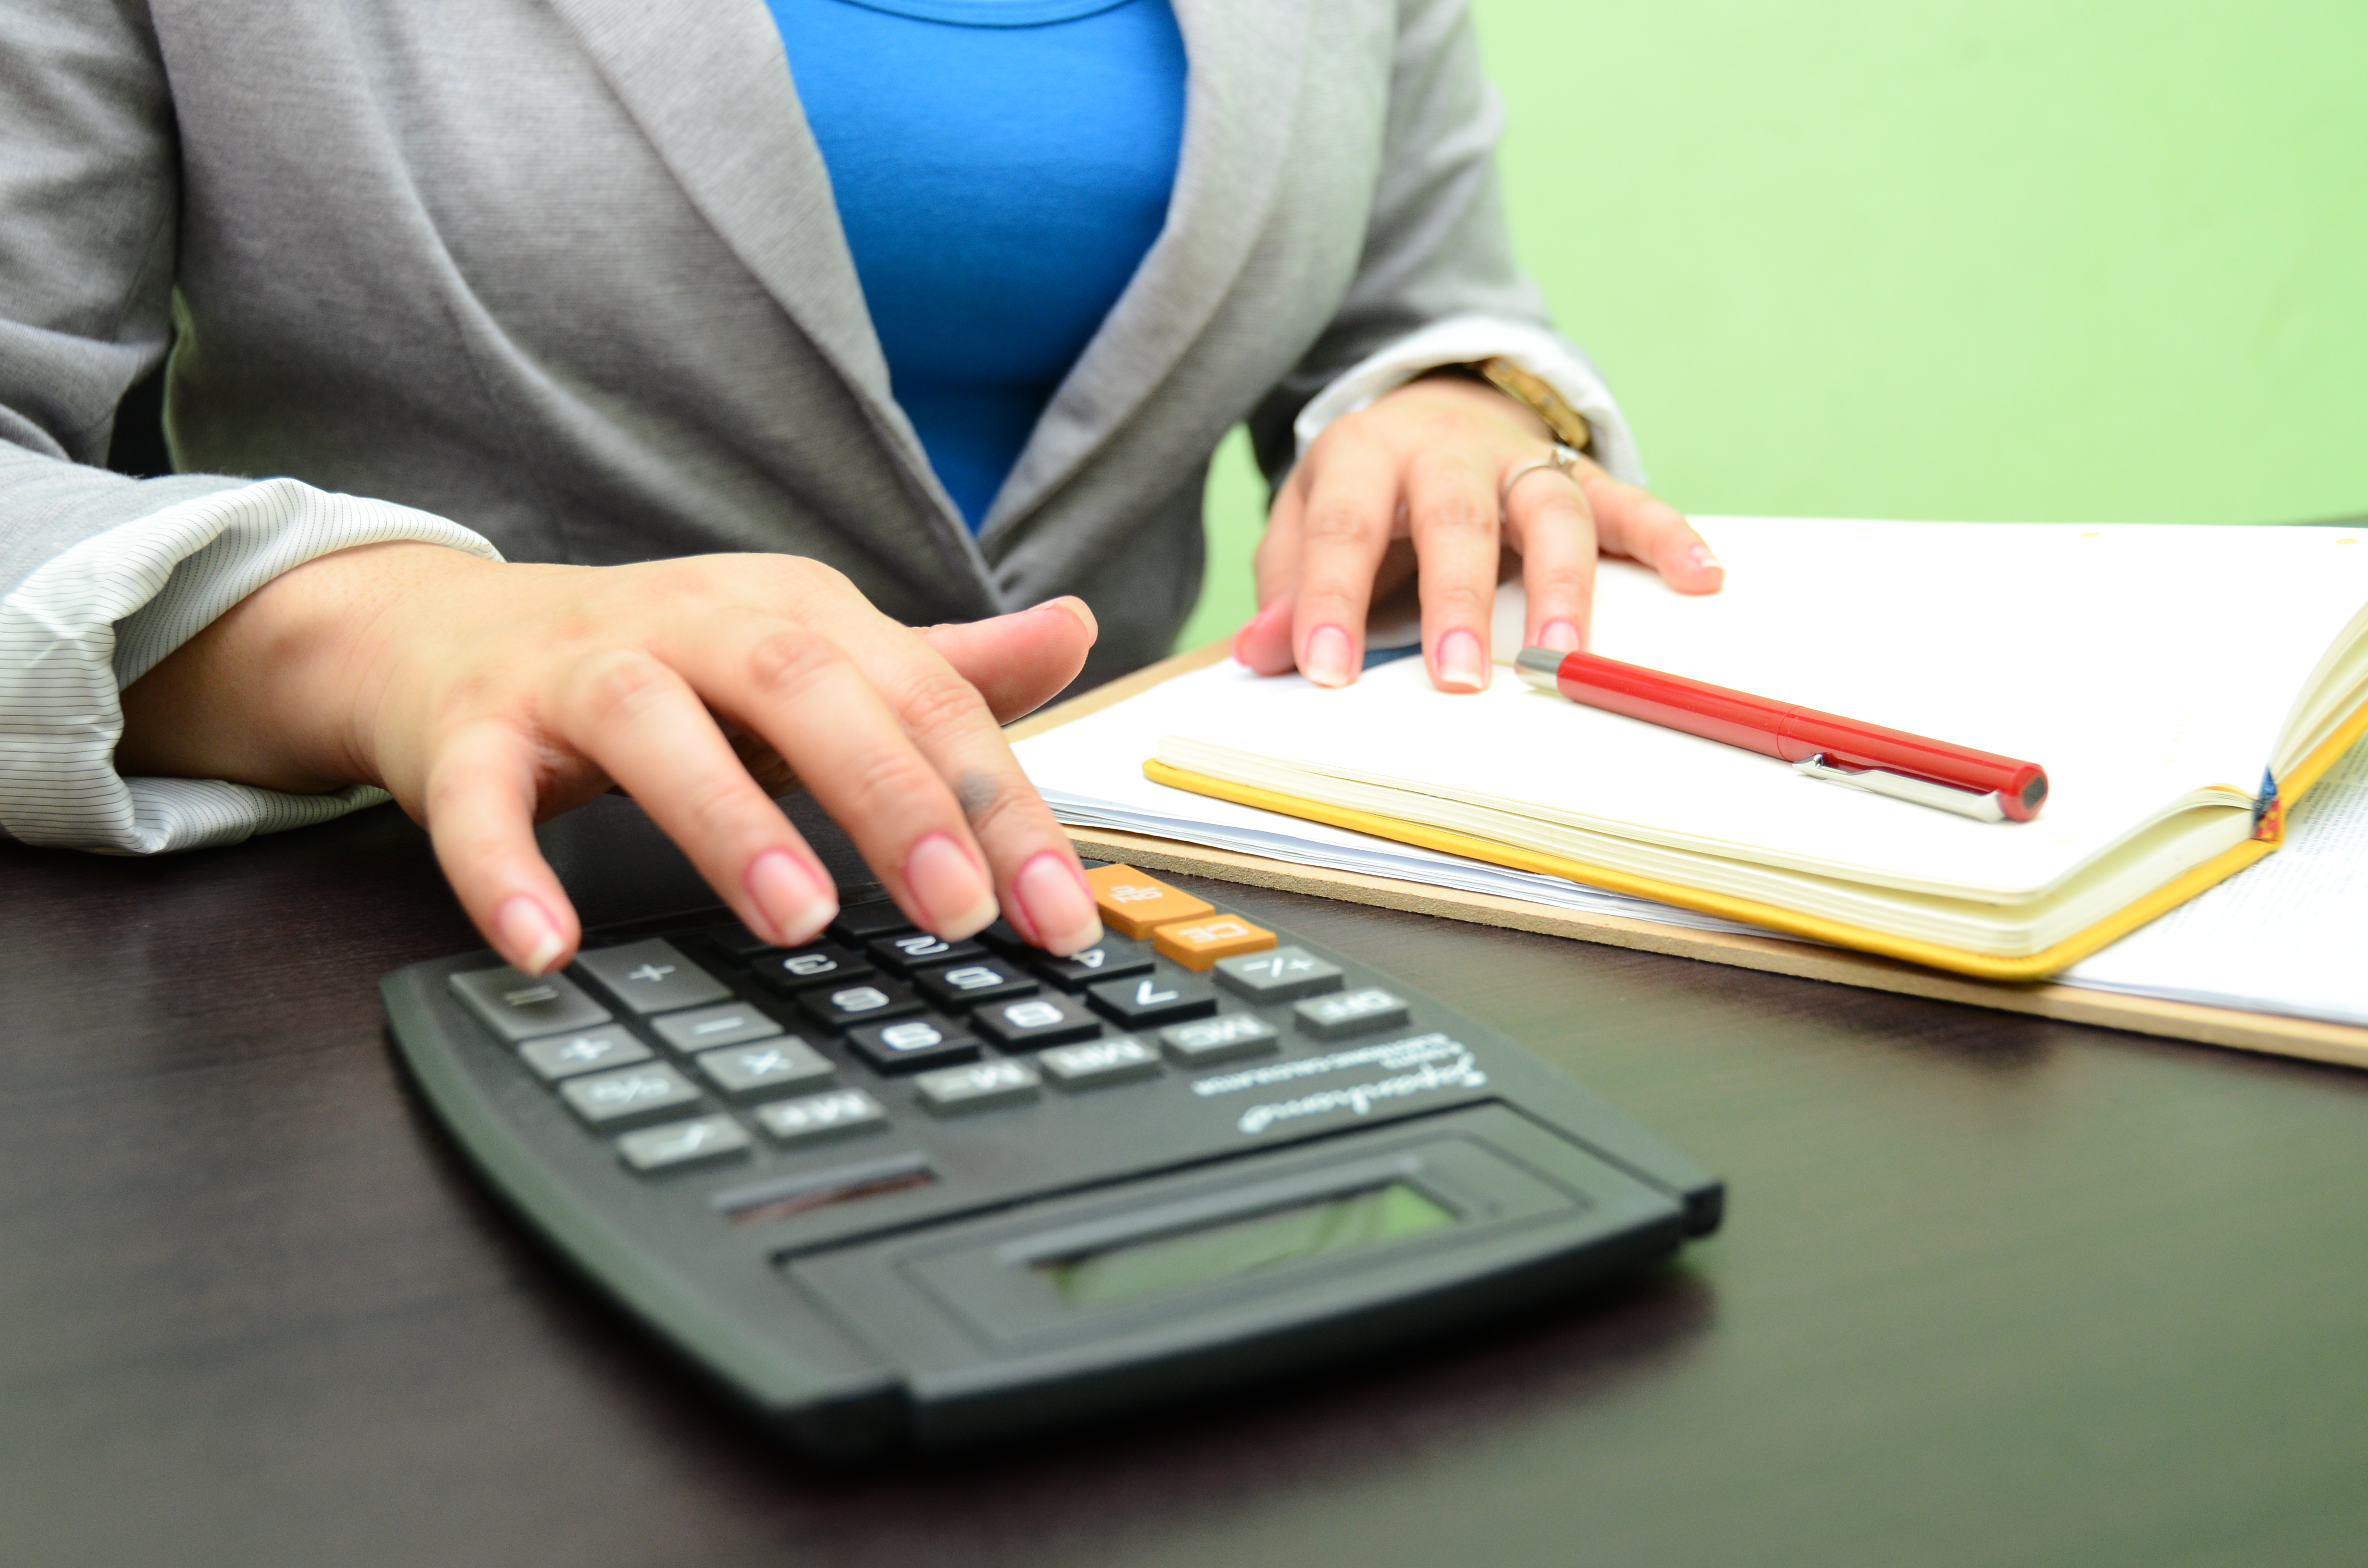 calculate-cost-of-debt-how-to